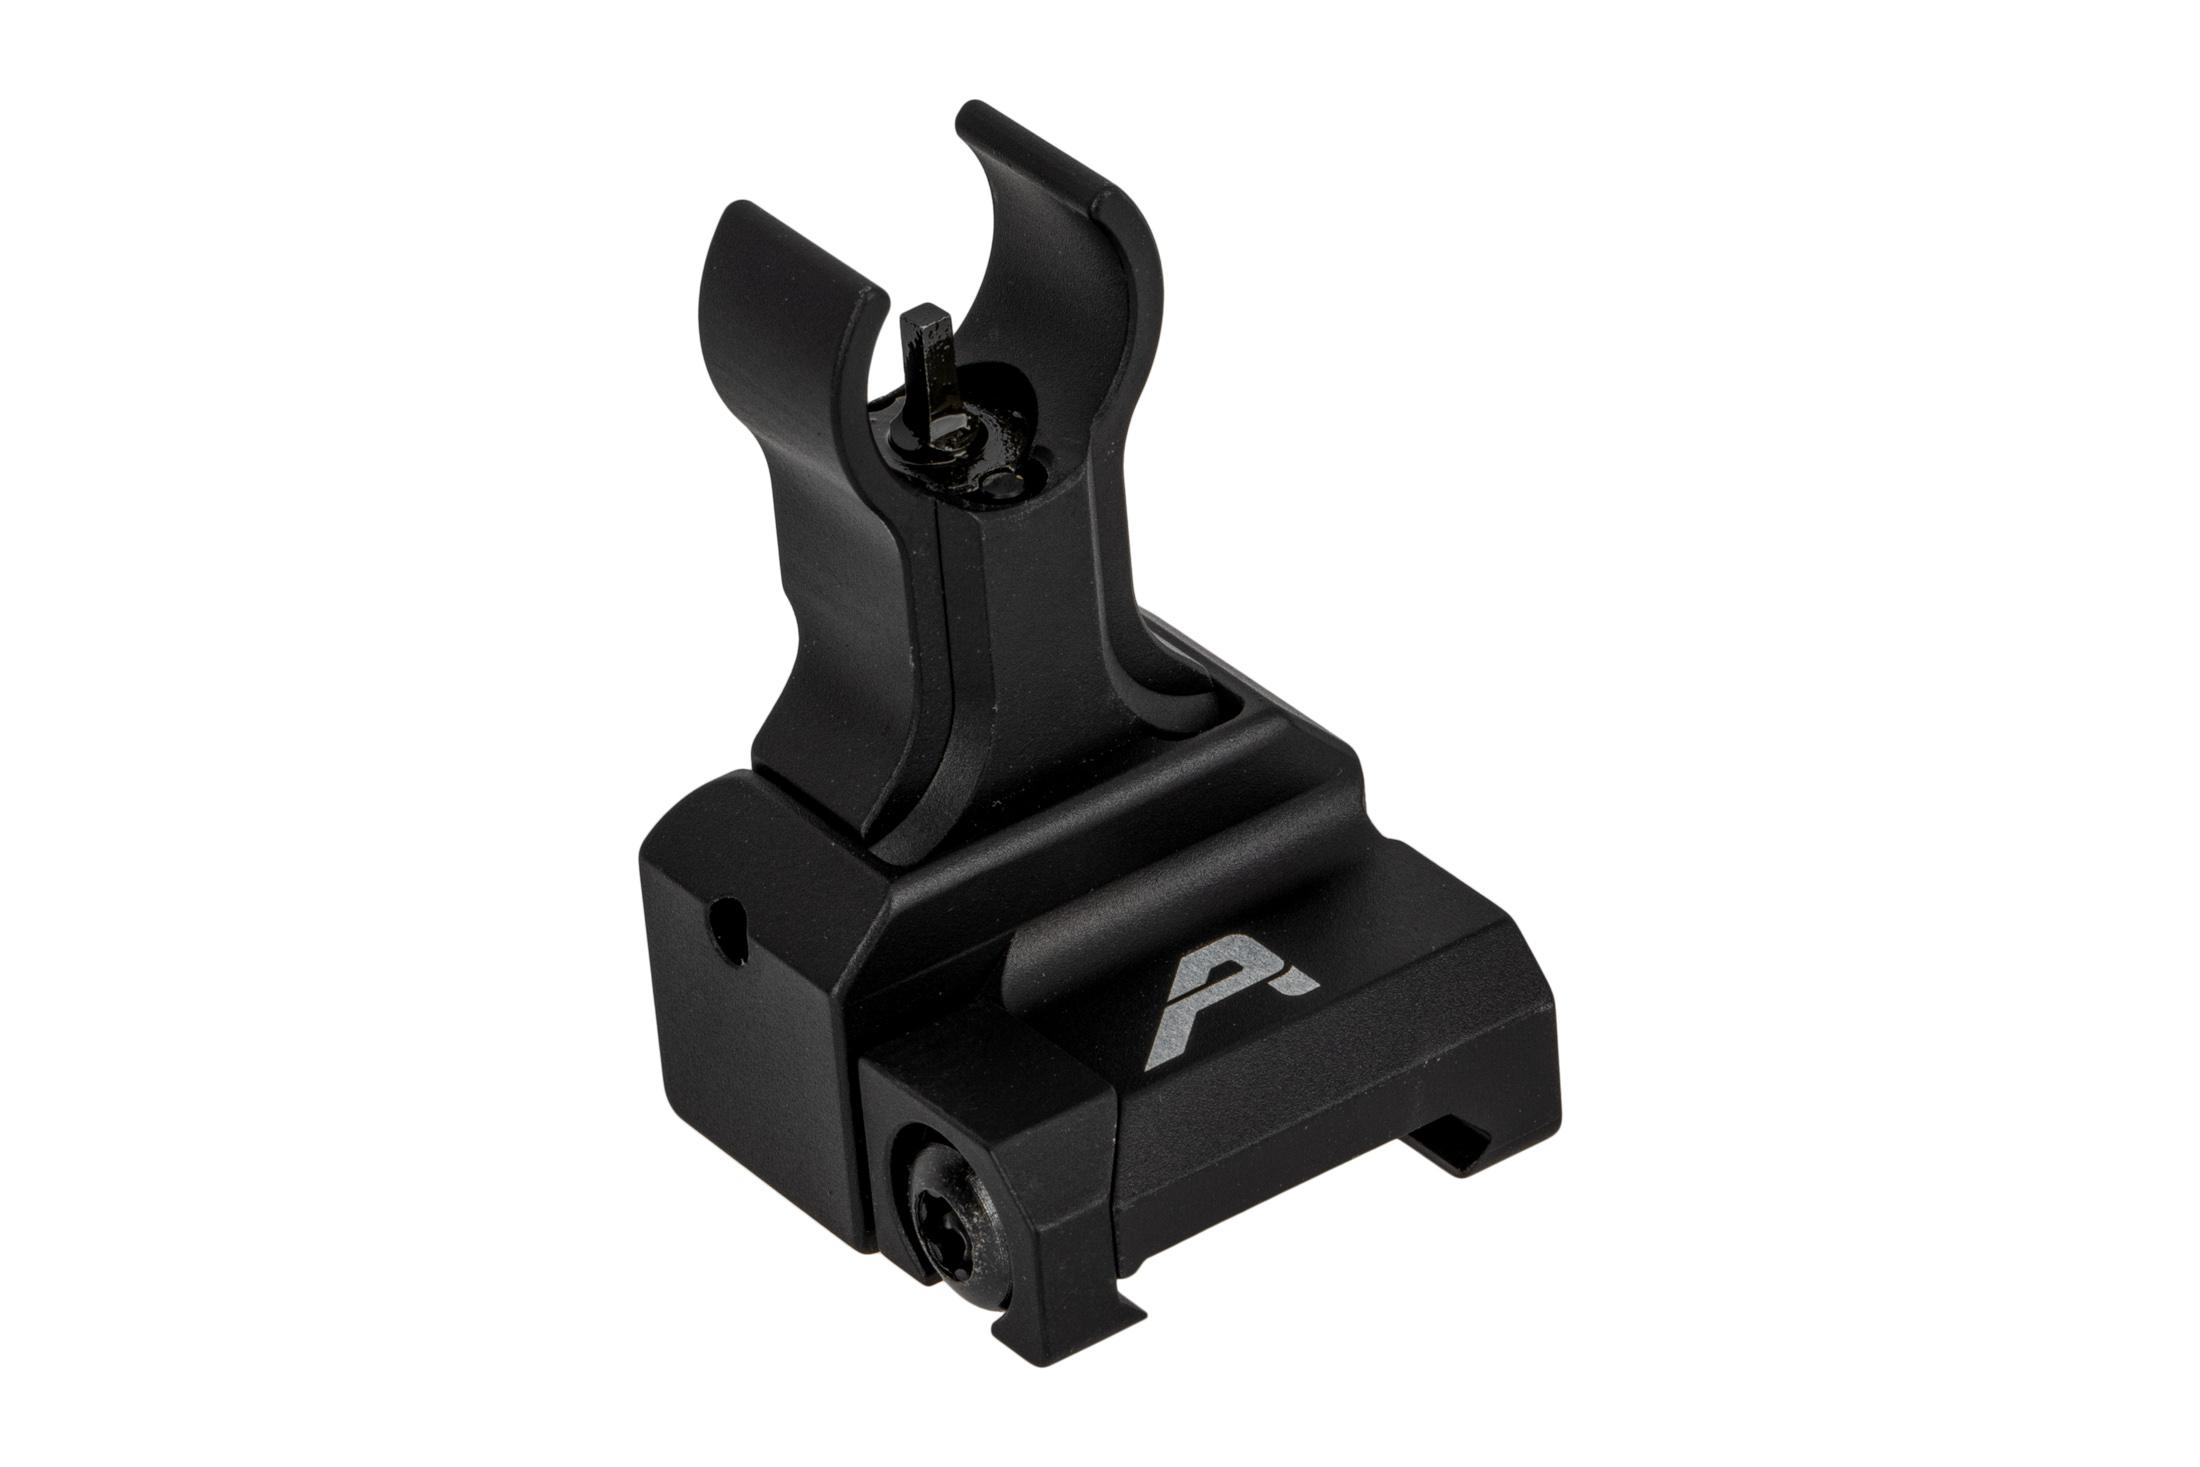 Aero Precision Gen 2 front flip up sight for AR-15 rifles folds flat with black anodized finish.